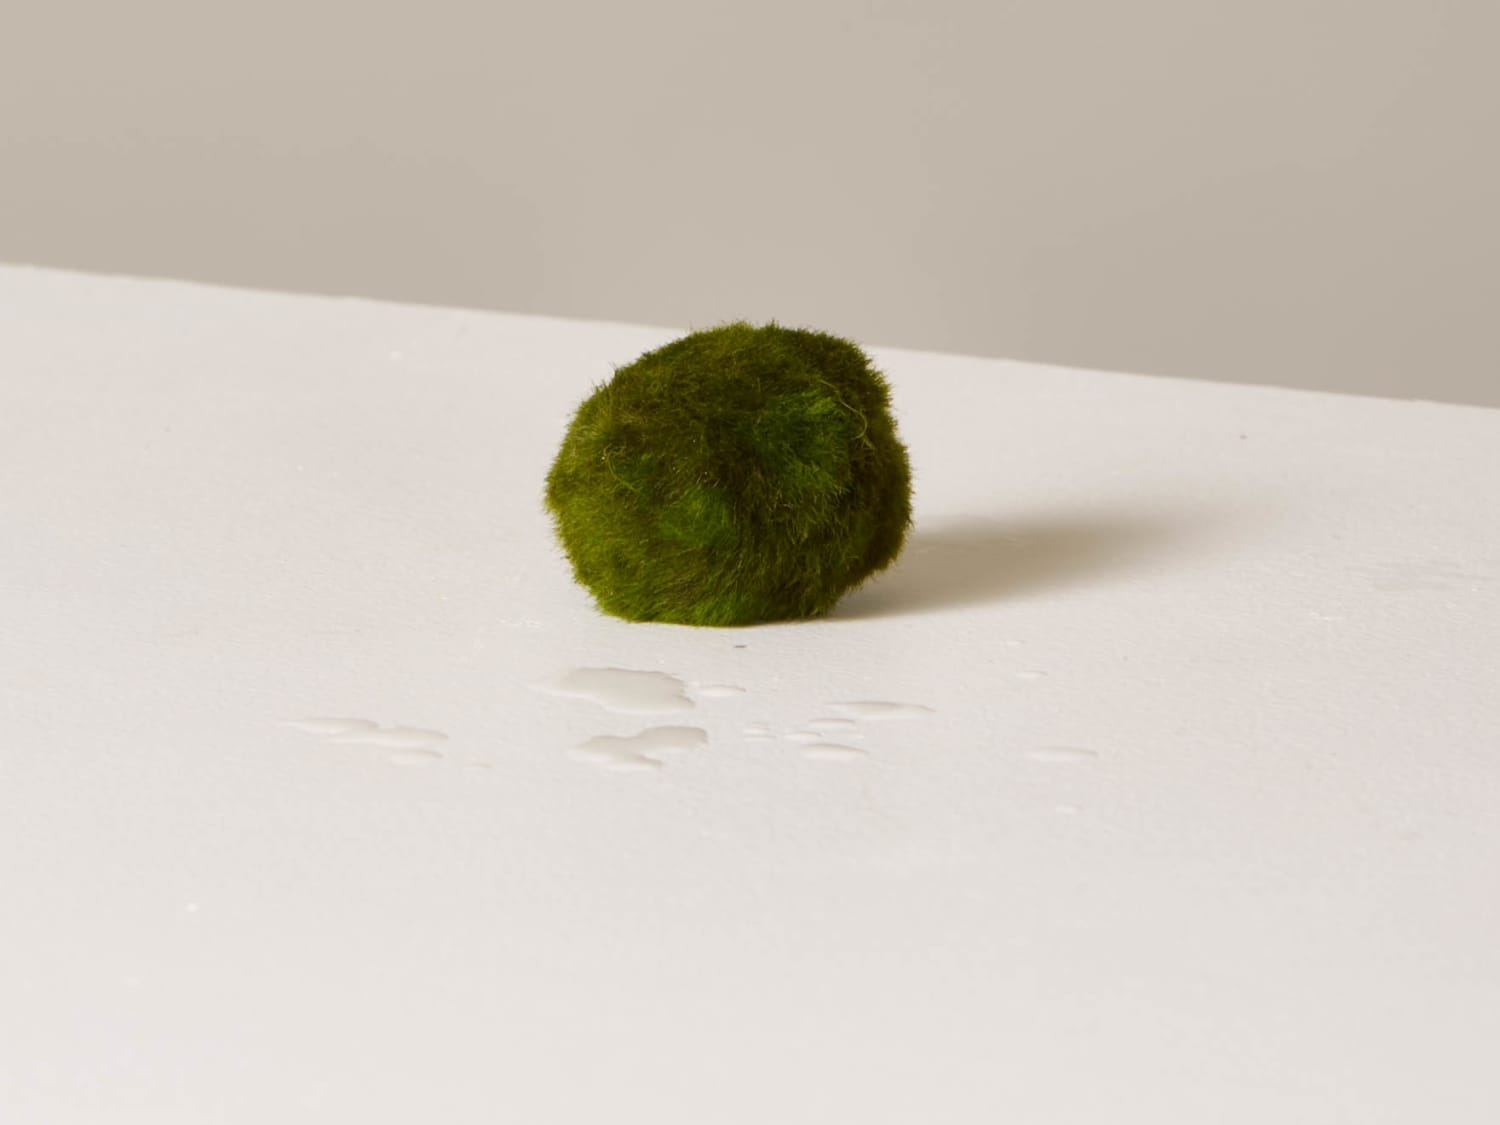 How To Grow And Care For Marimo Moss Apartment Therapy